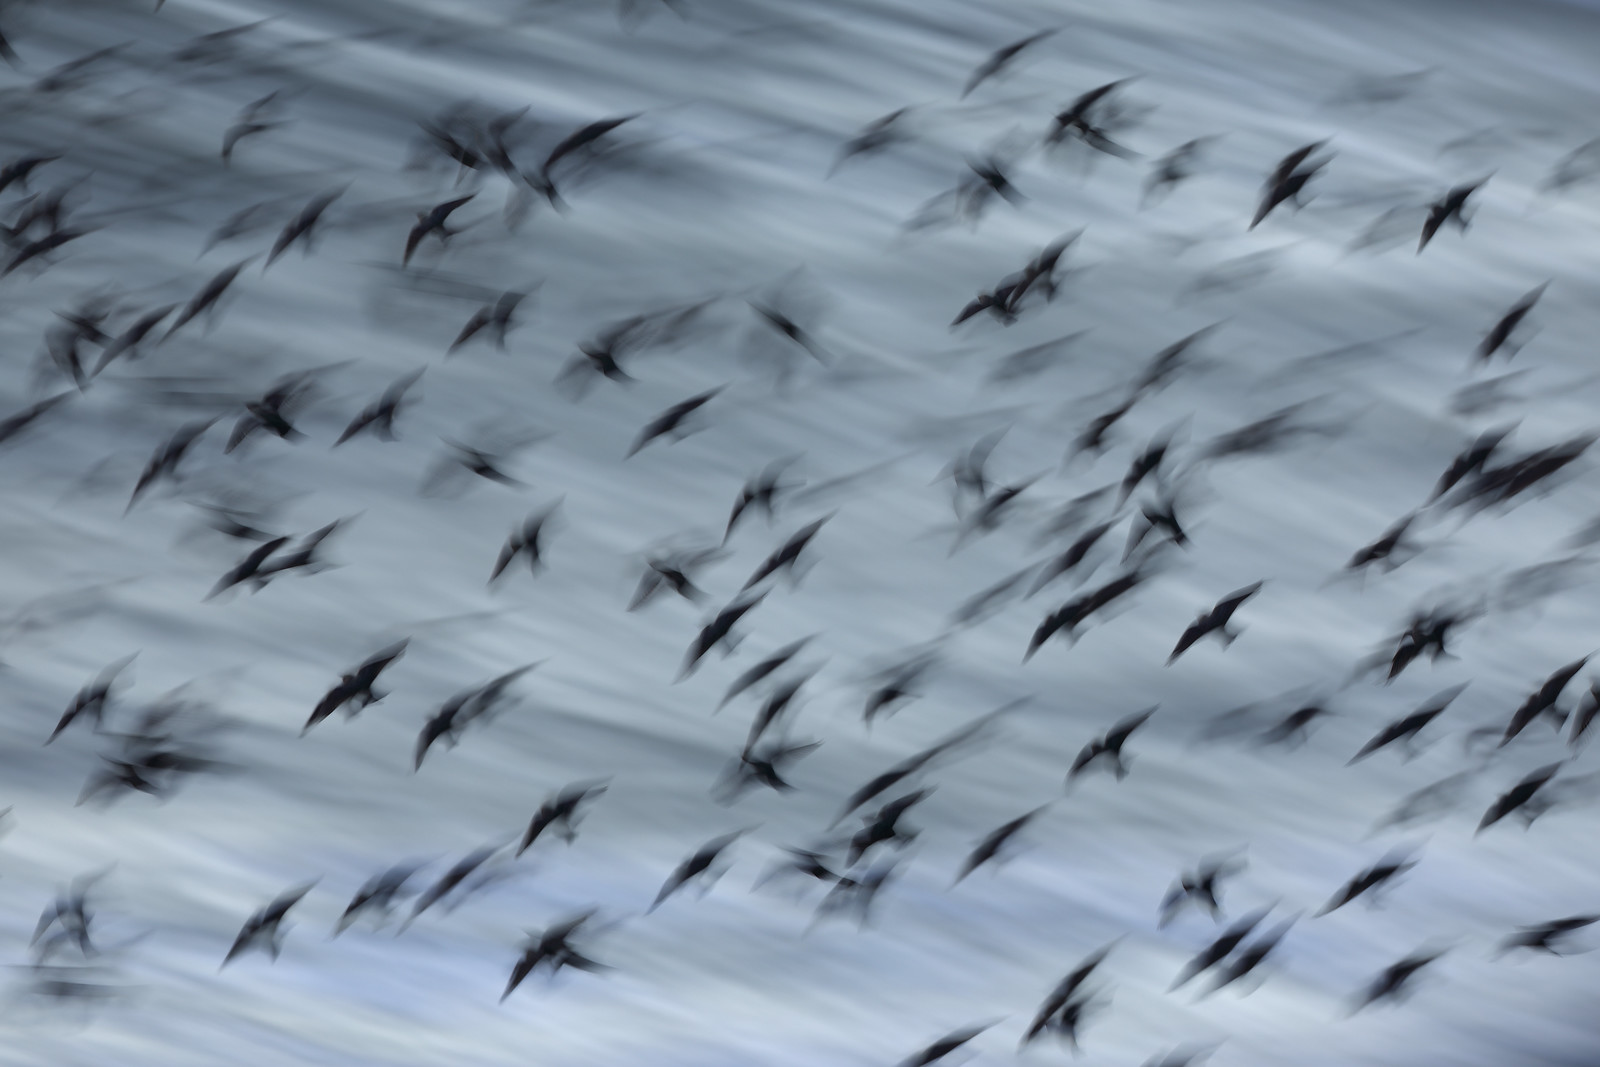 Starlings over Stormy Seas